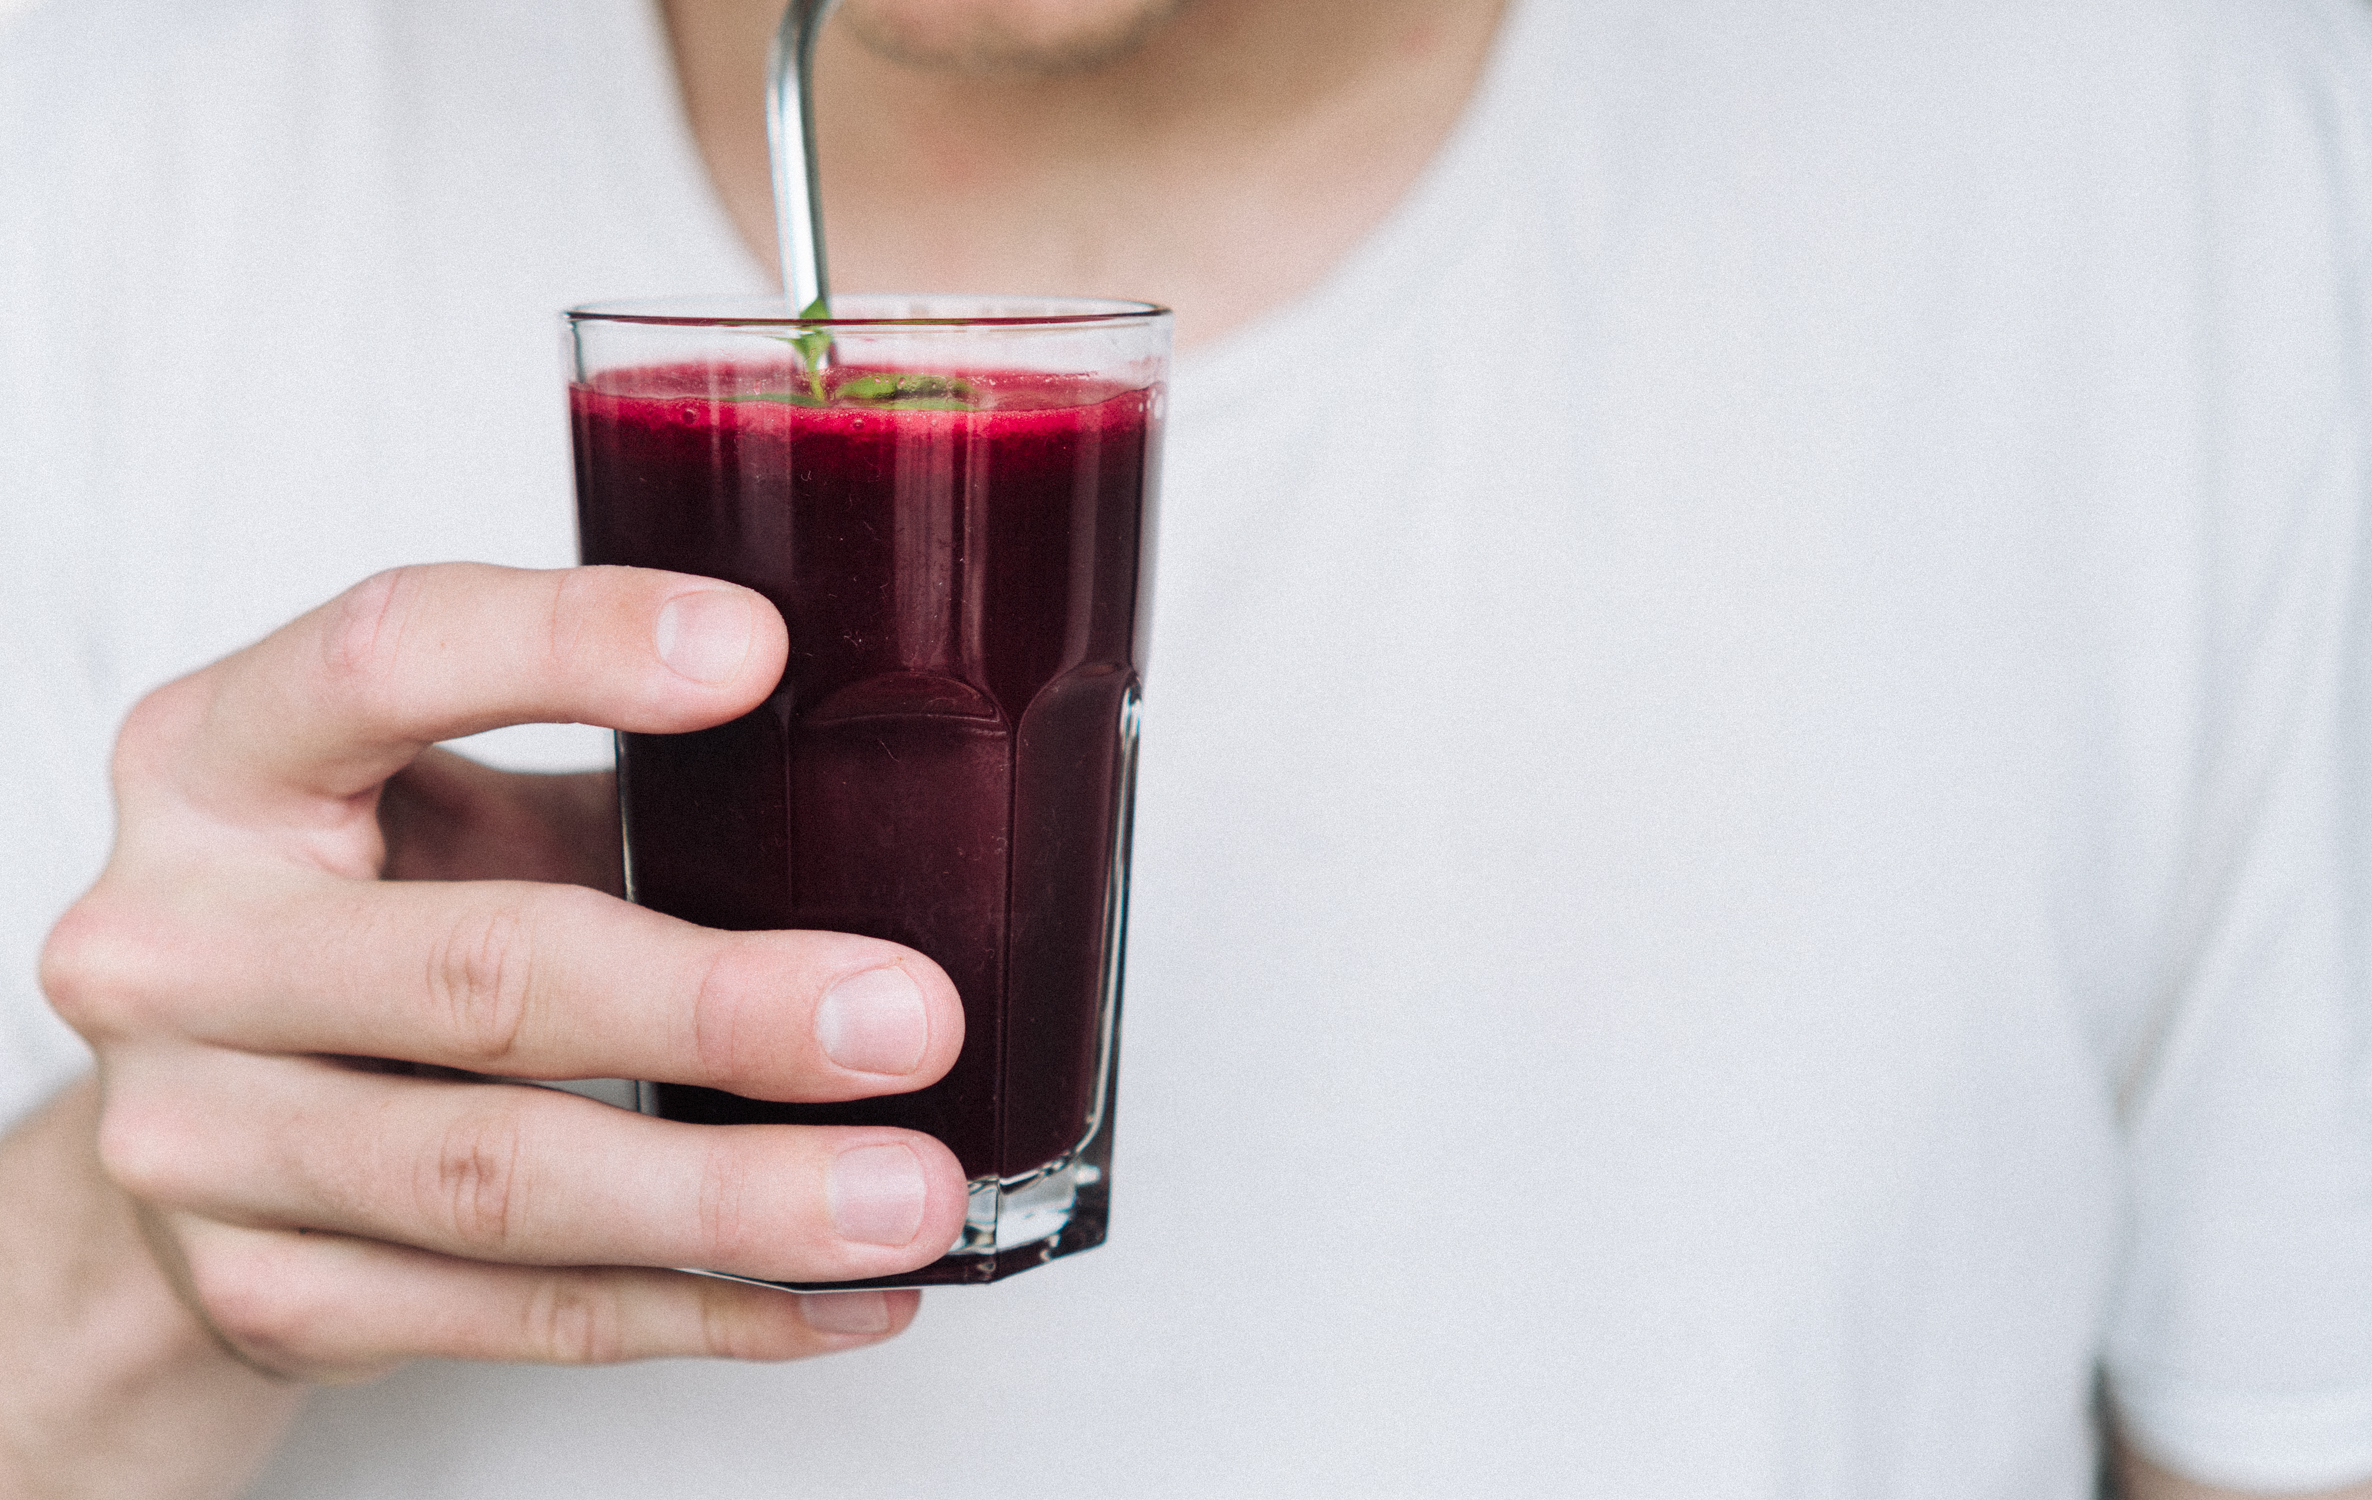 cold_pressed_beet_apple_and_carrot_juice.jpg